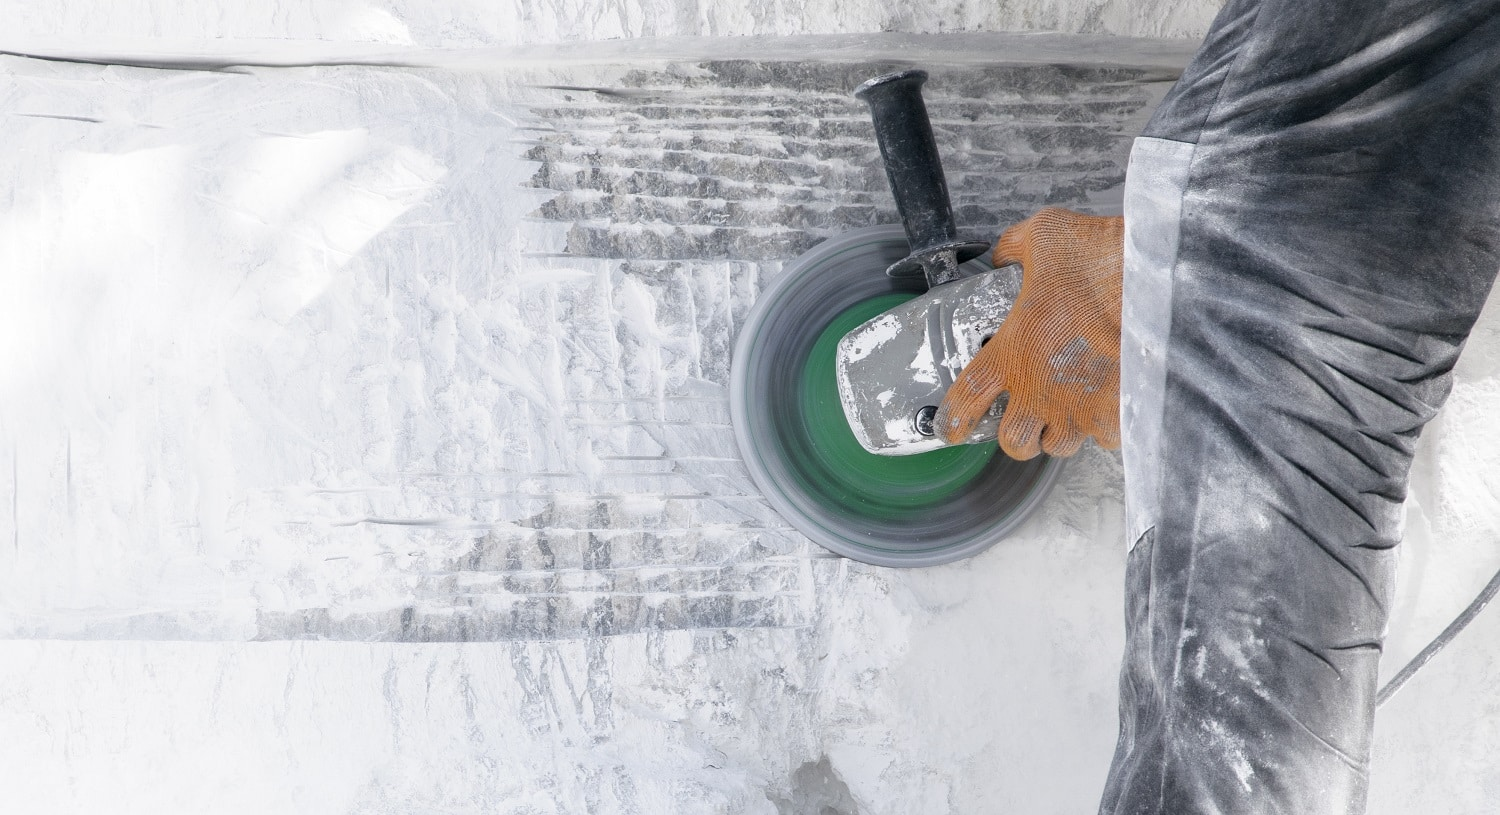 Construction work of<br /> white stone cutting by cut-off saw with diamond wheel.Close-up